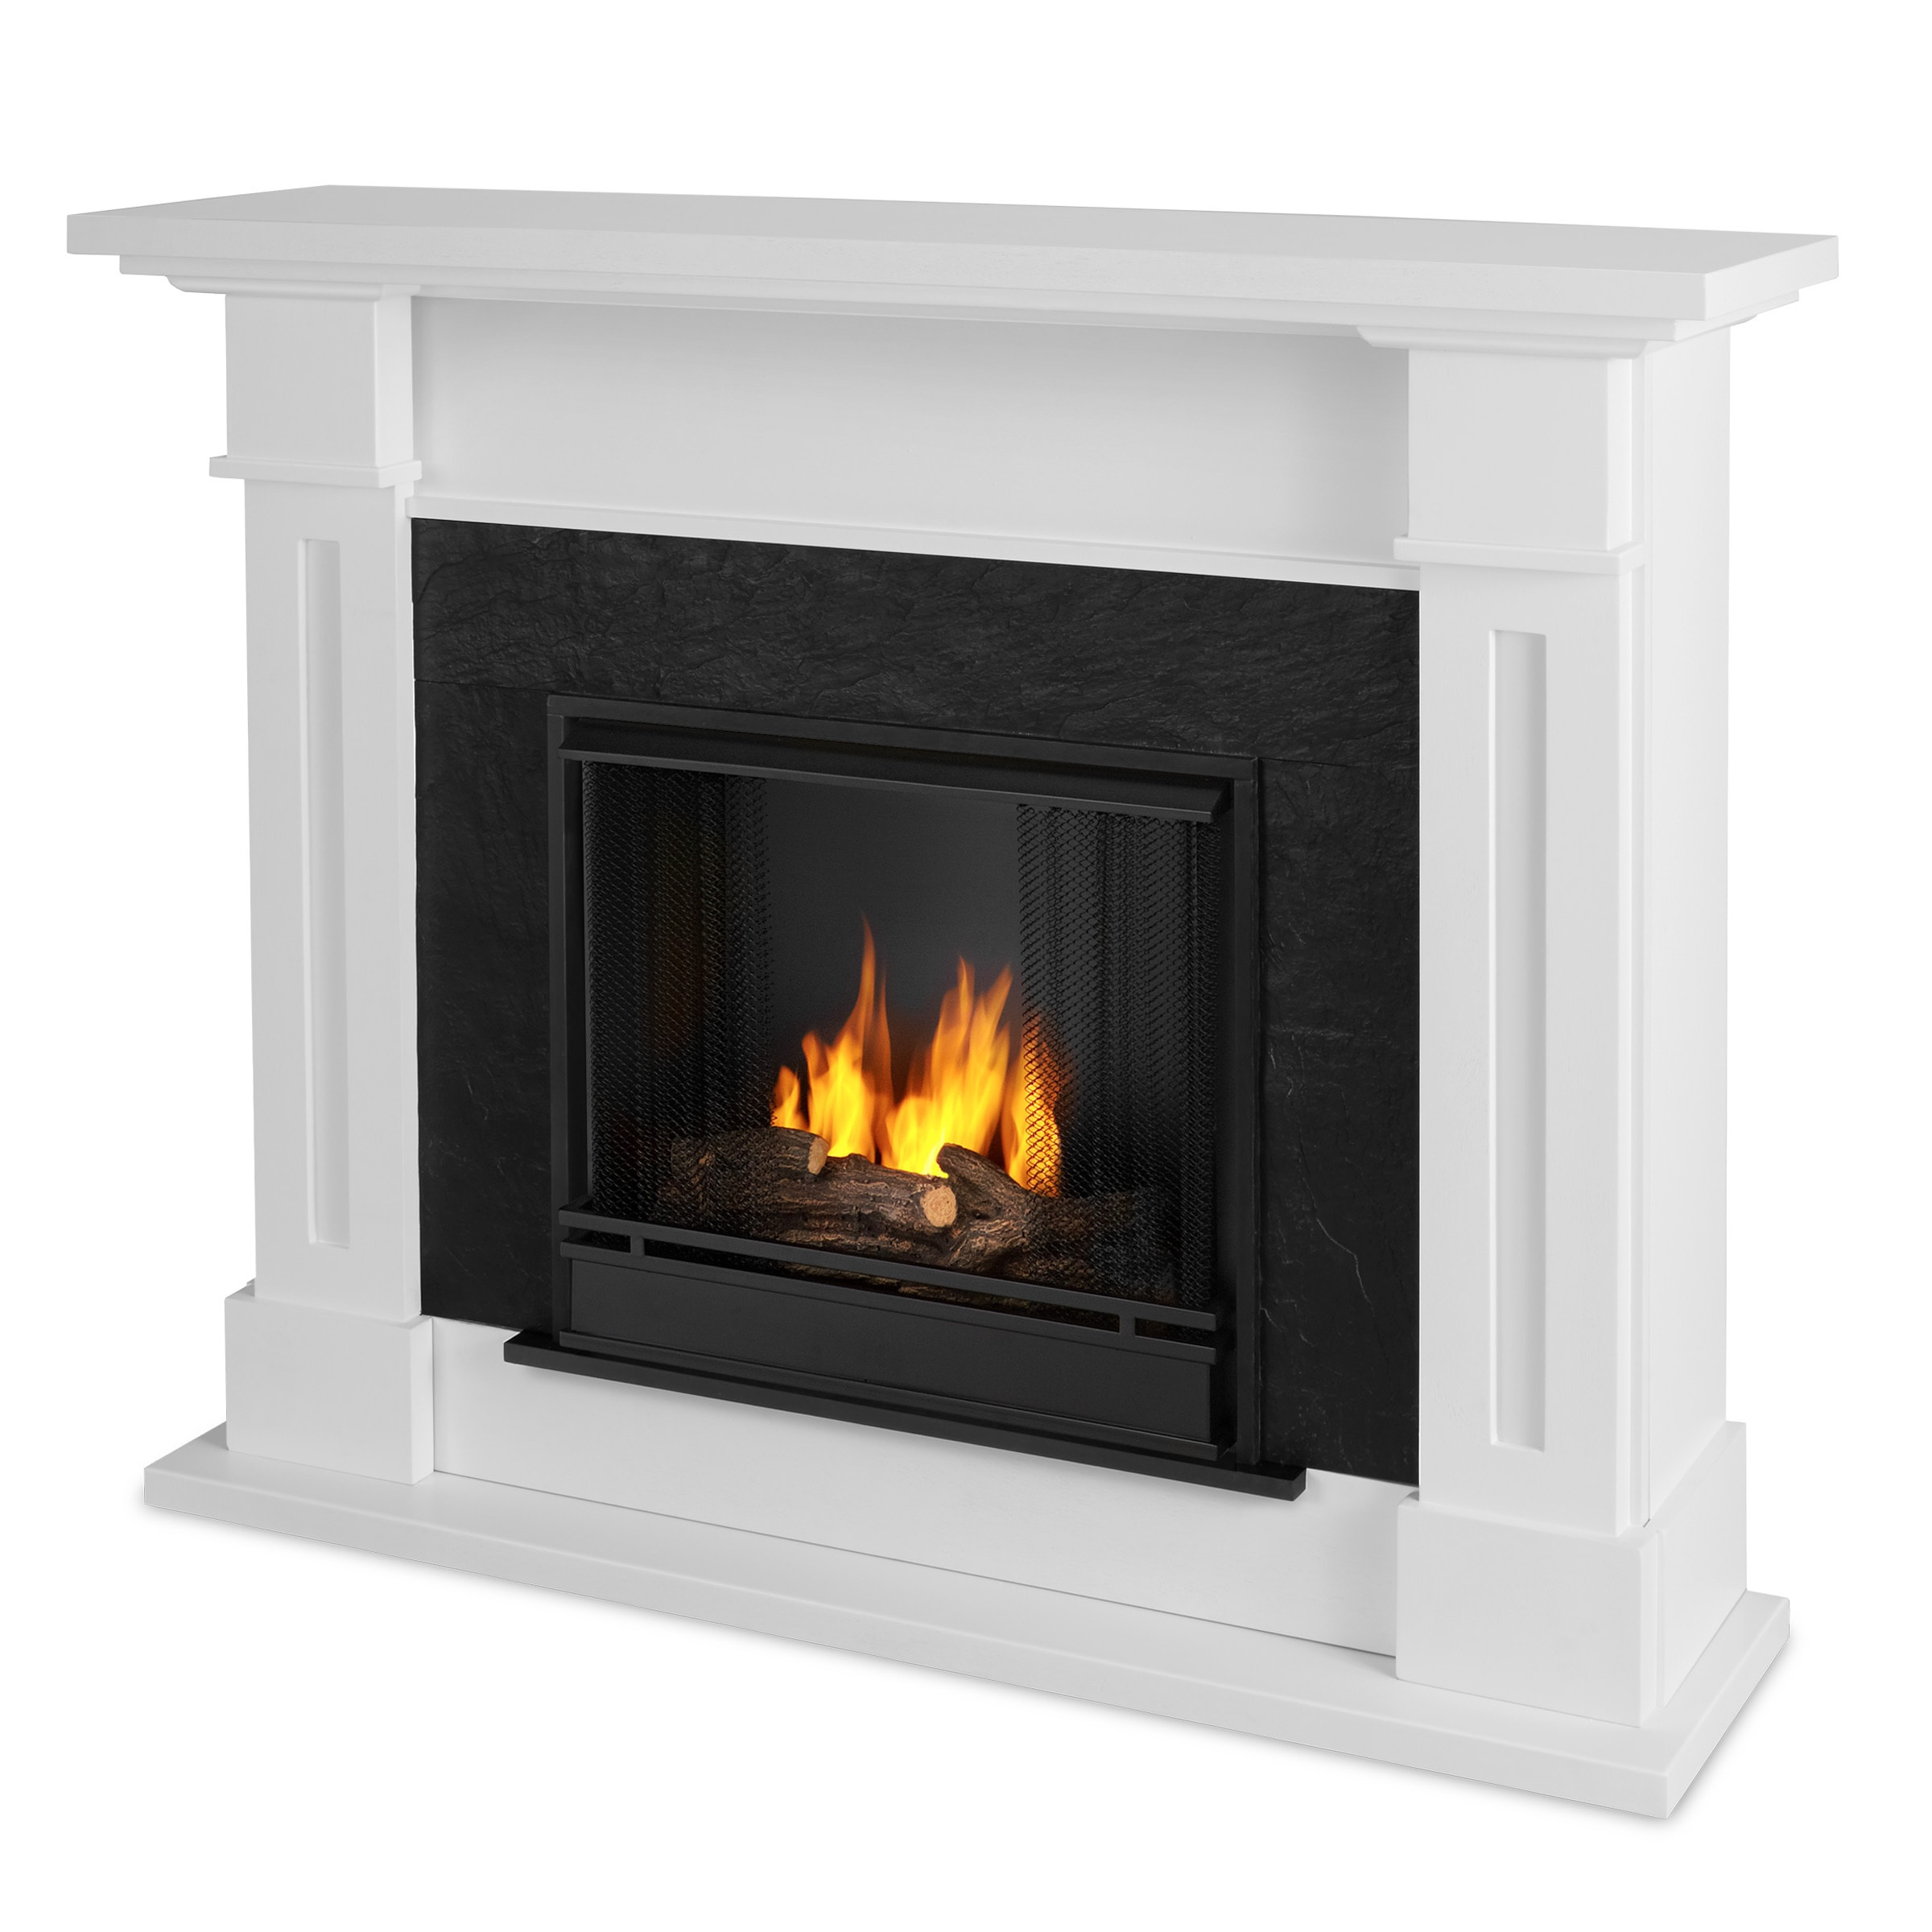 mounted canada heat wall wood furniture alt source m fuel fireplace kit gf lowe s highland gel type fireplaces stoves